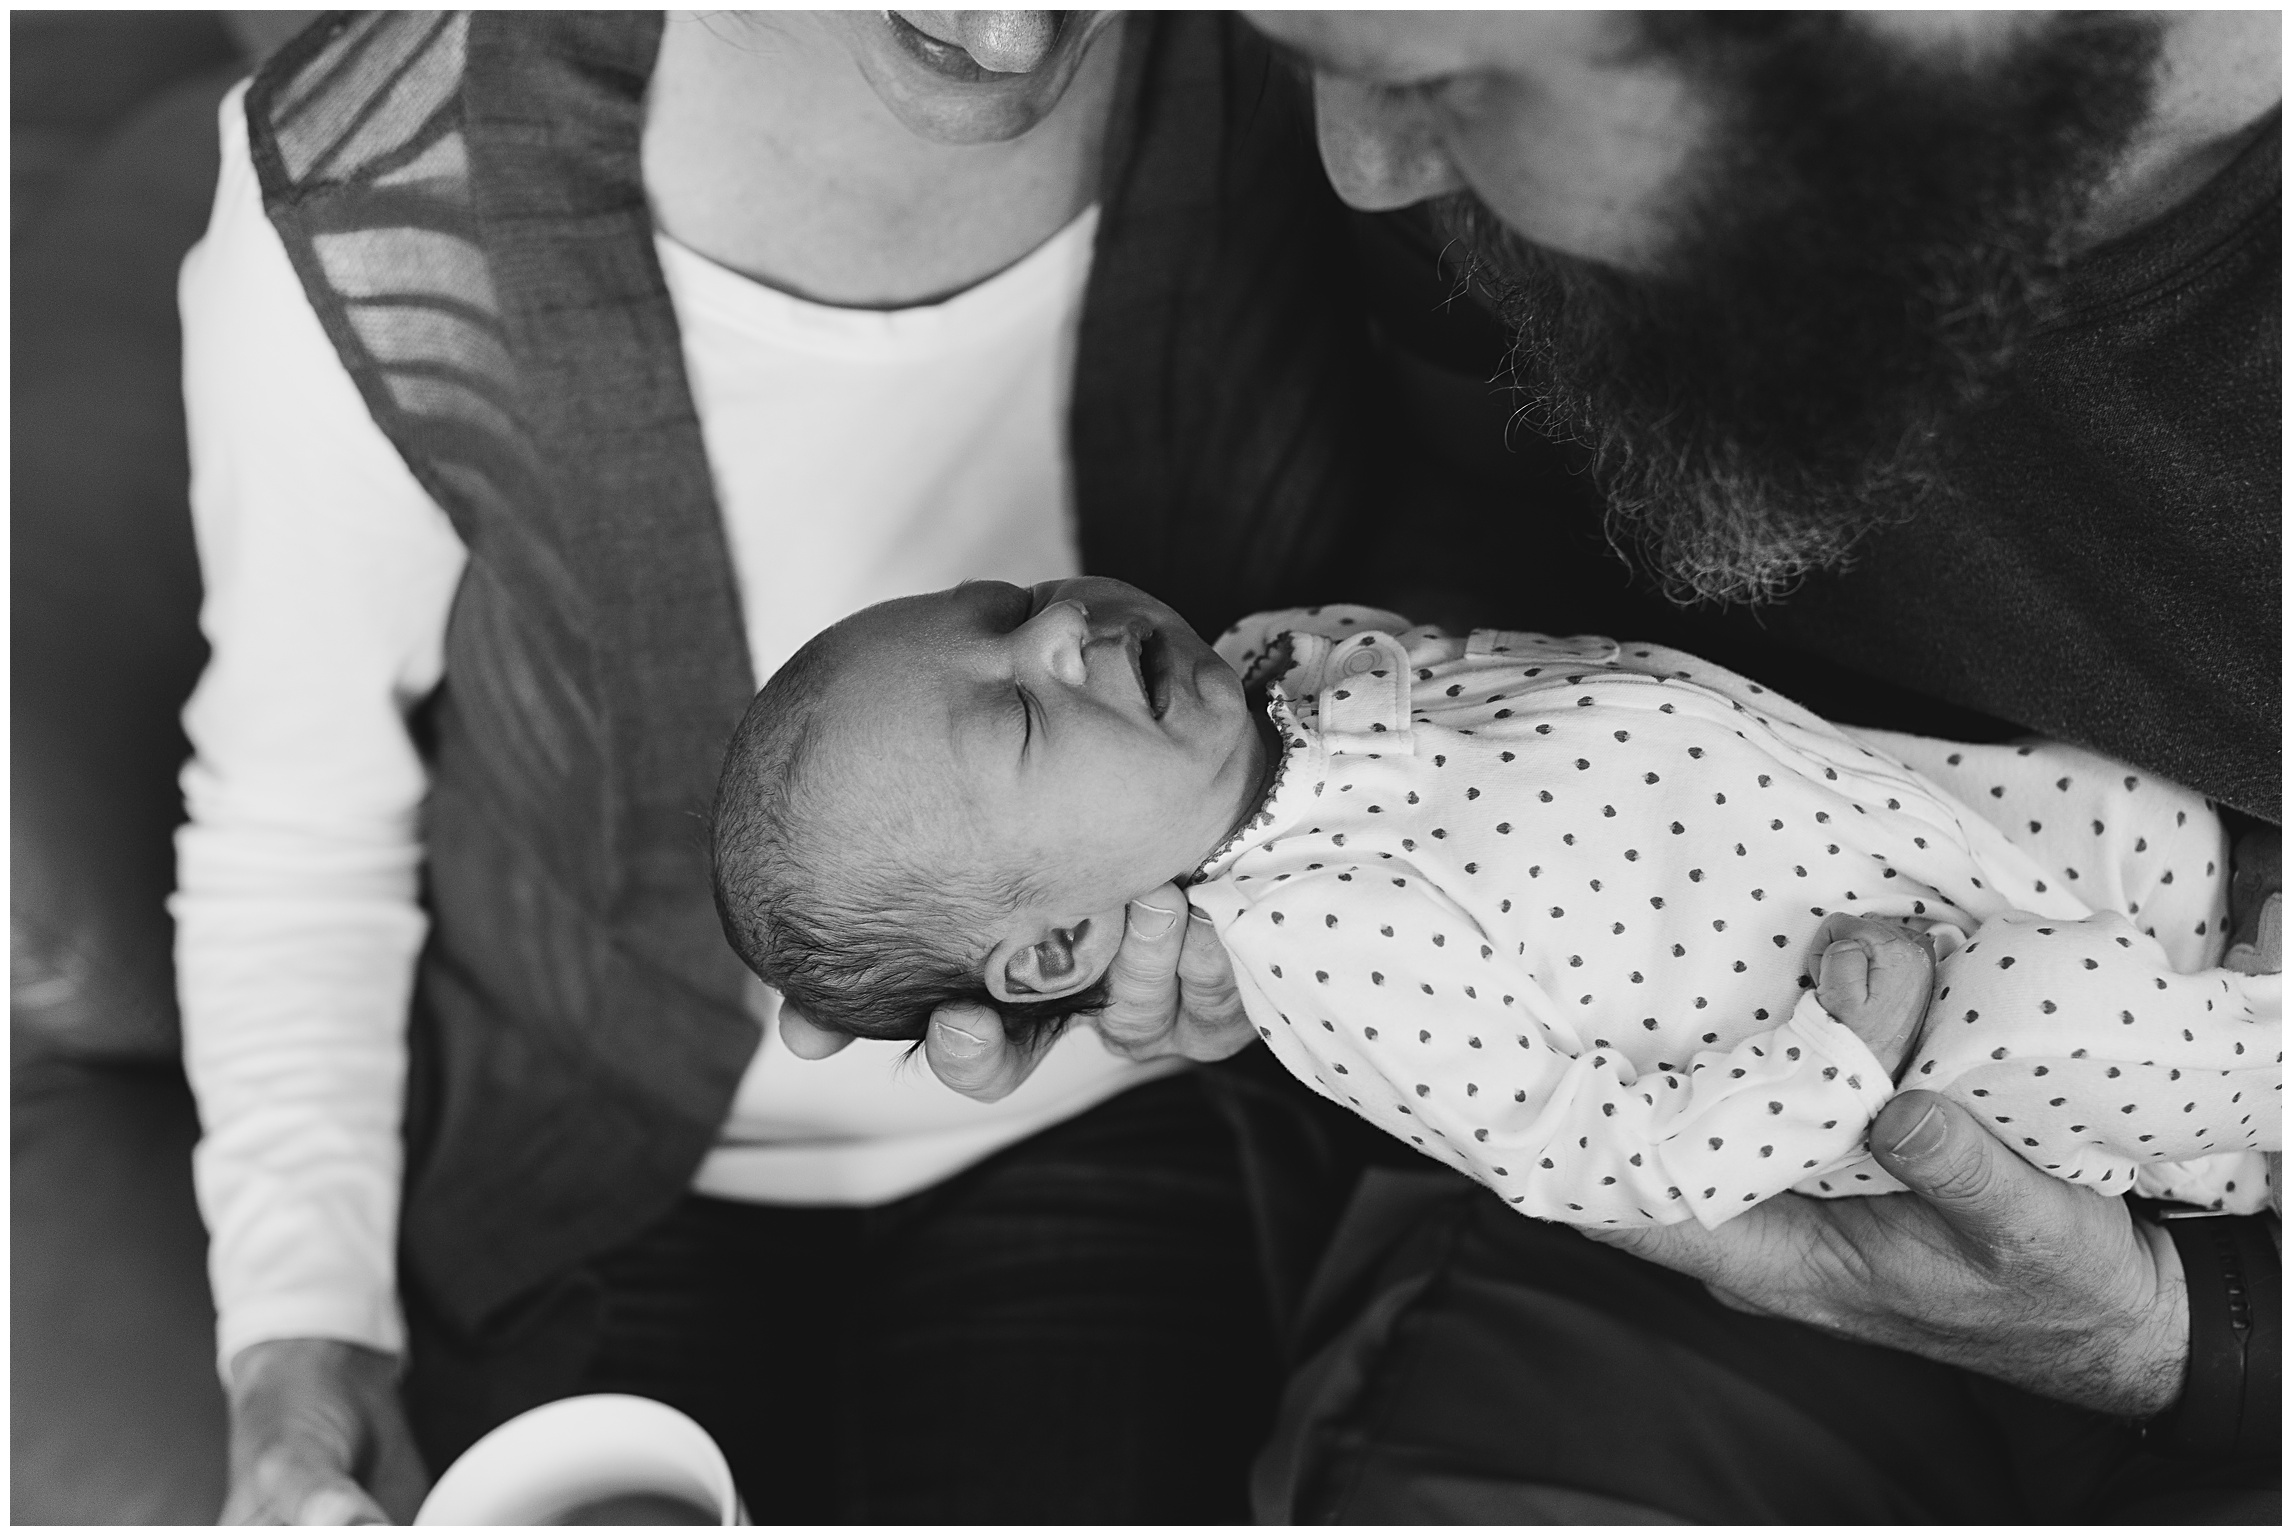 A mother and father hold their sleeping newborn baby girl. Film family photography by Sonja Salzburg of Sonja K Photography.